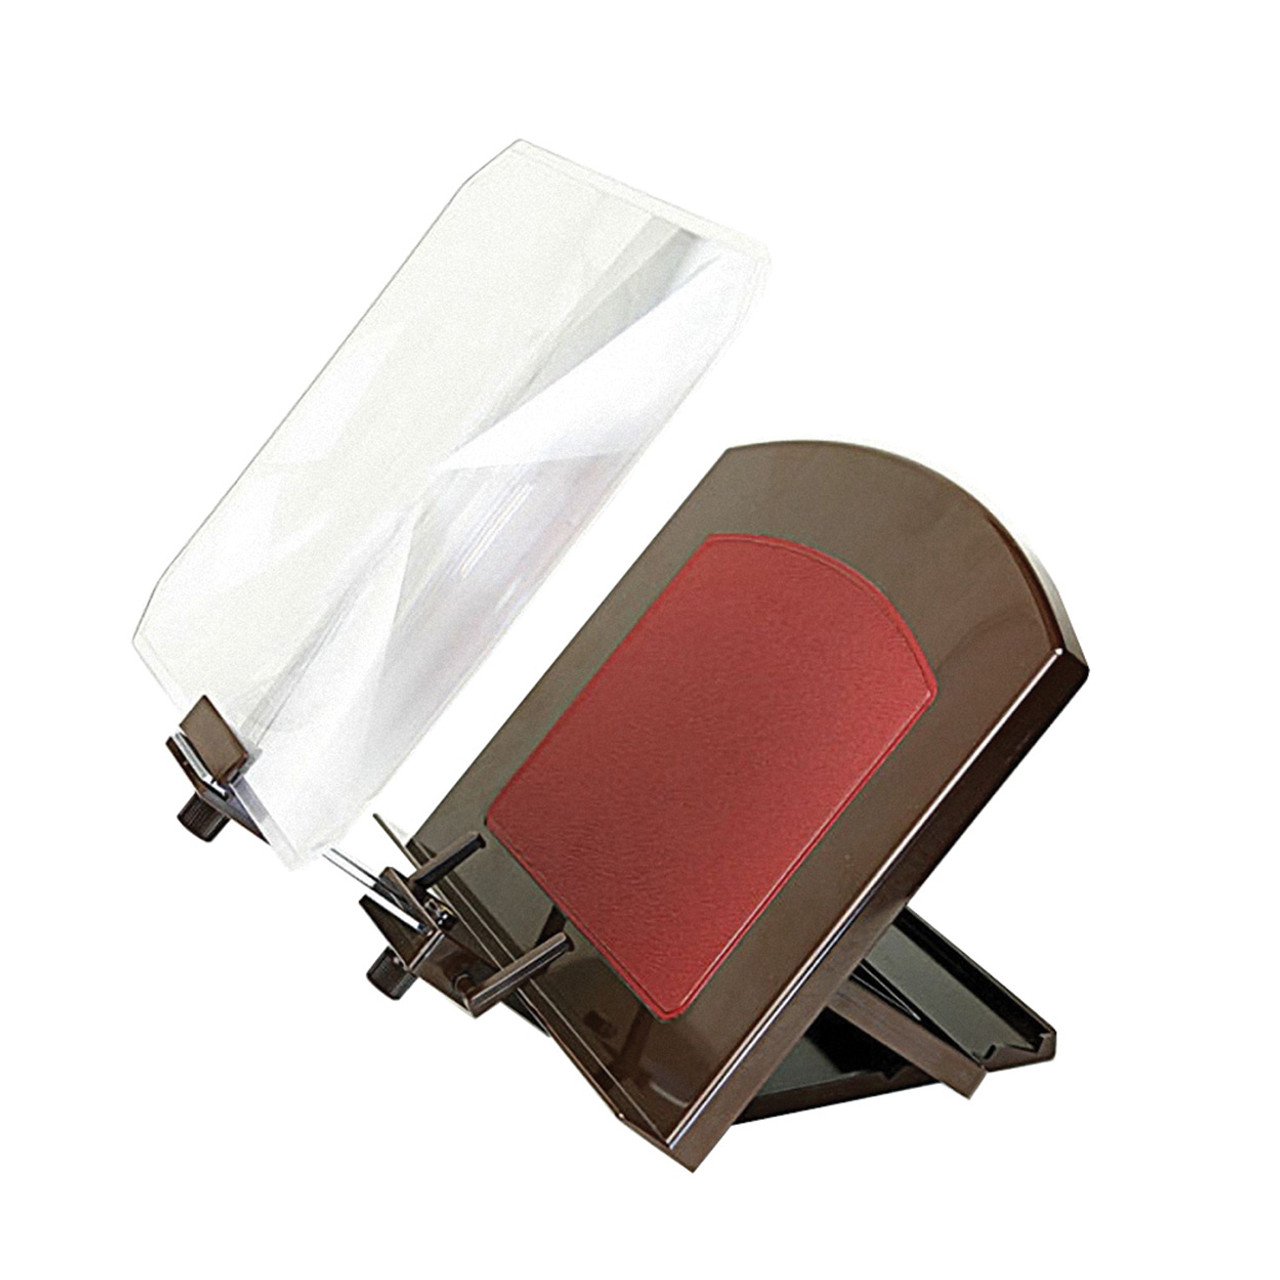 2X Balmoral BookStand w/ Full Page Magnifier